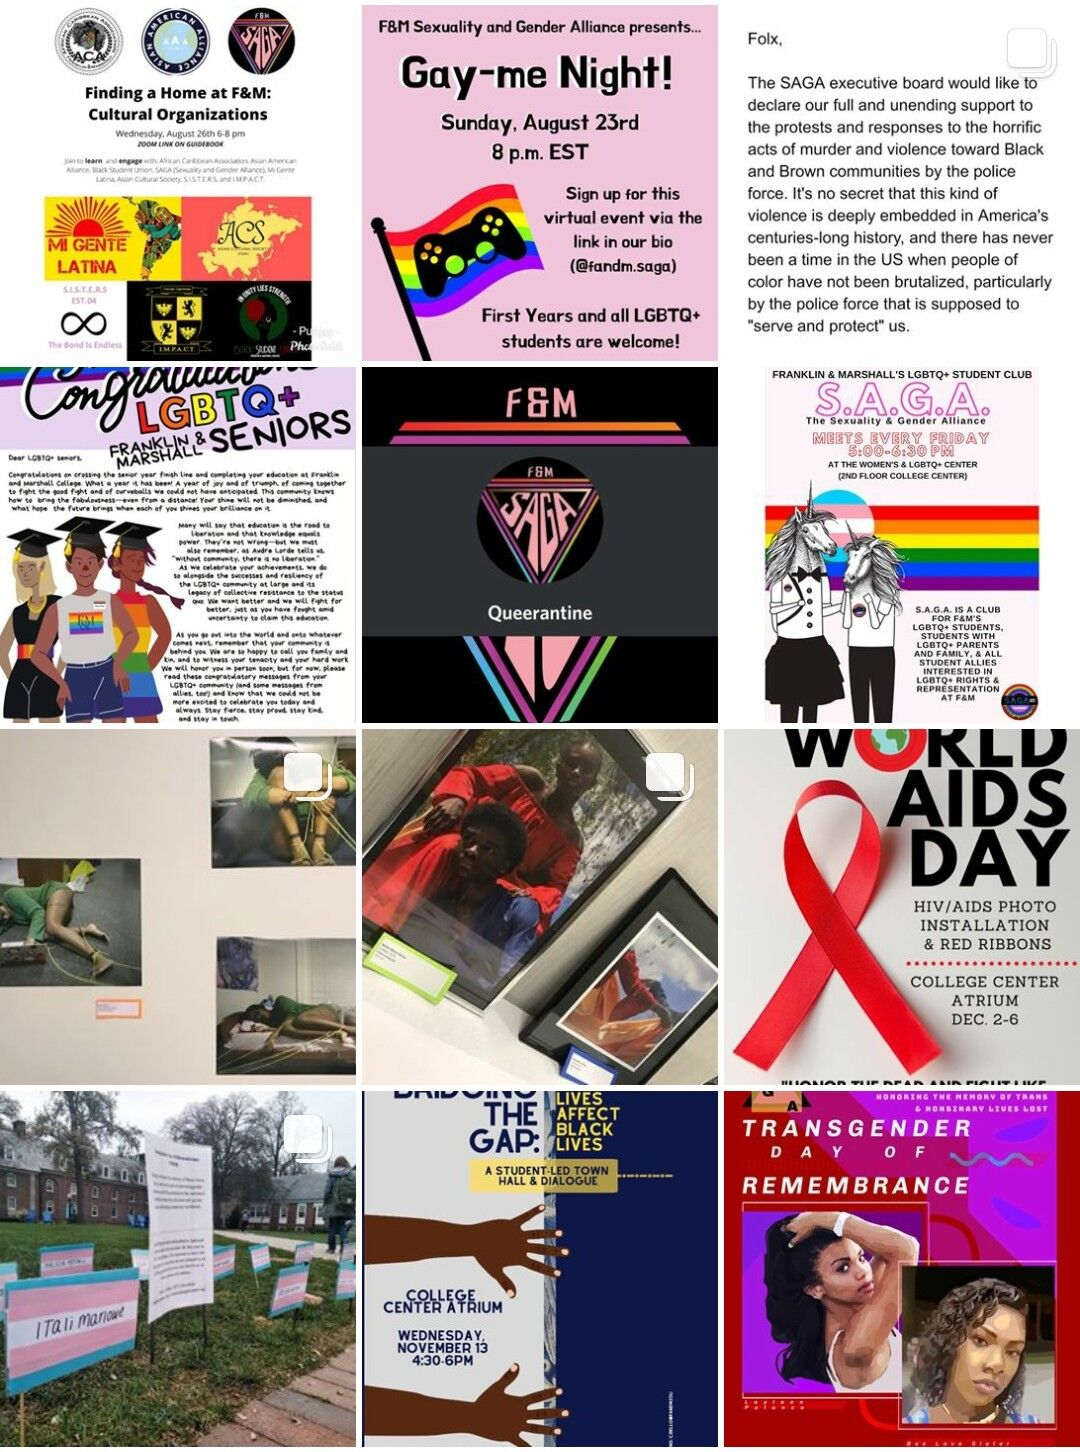 A screenshot of various posts made on SAGA's instagram for different events, including Gayme Night, Art Show, and Transgender Day of Remembrance